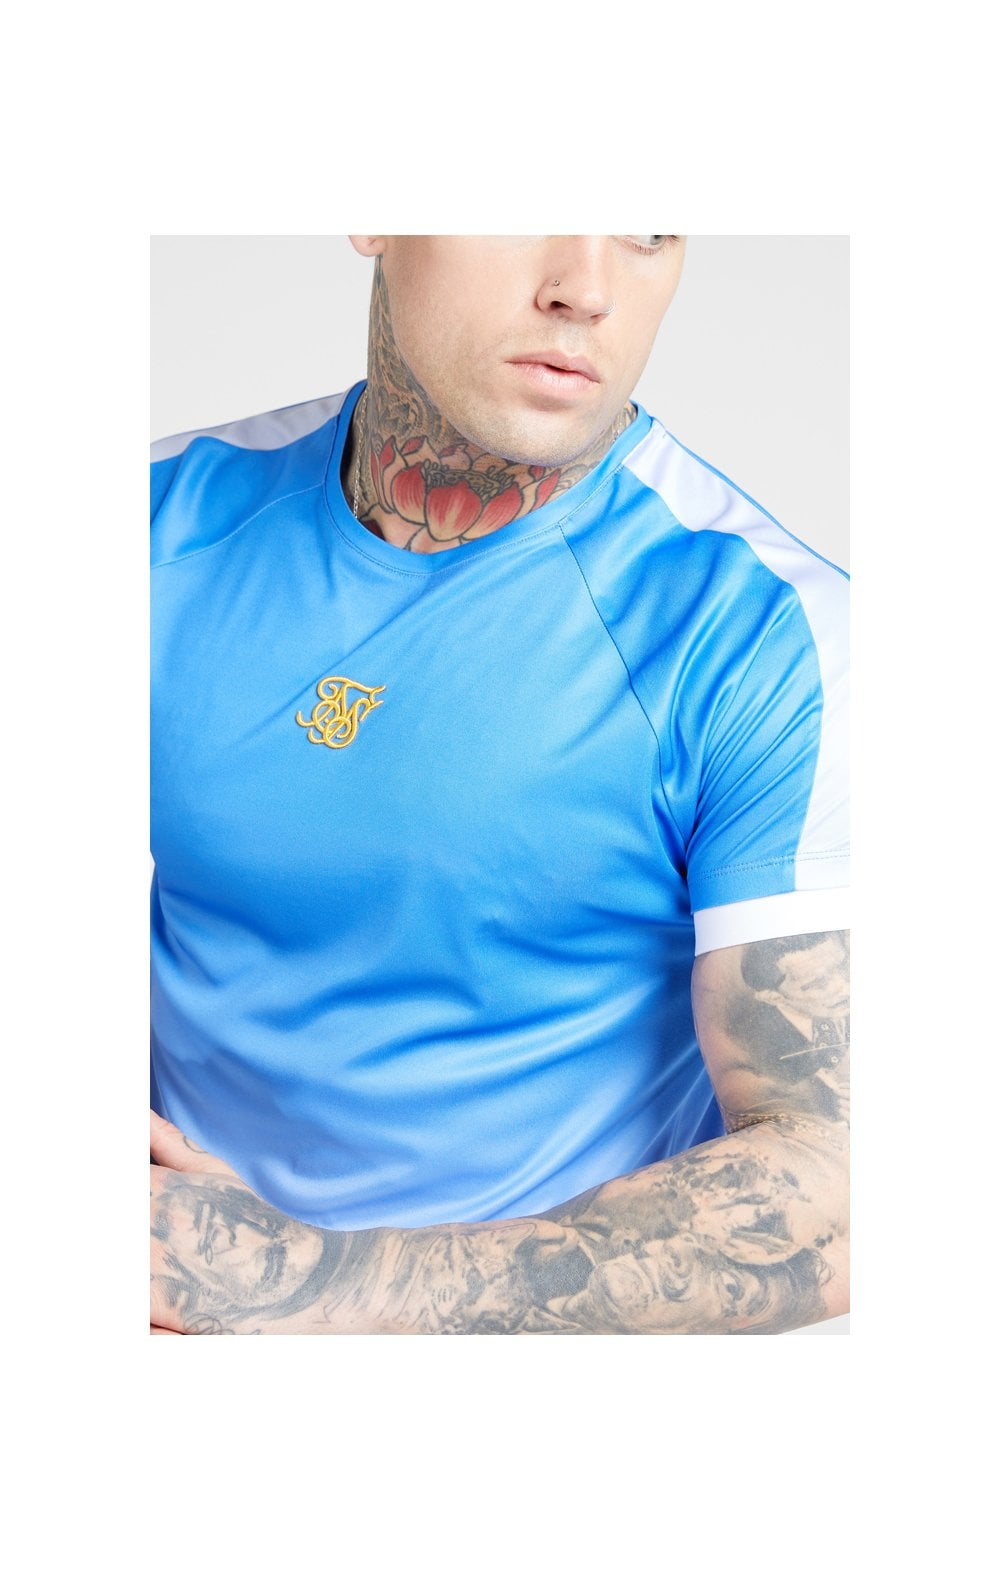 SikSilk S/S Raglan Fade Straight Hem Tee - Blue & Lilac MEN SIZES TOP: Small